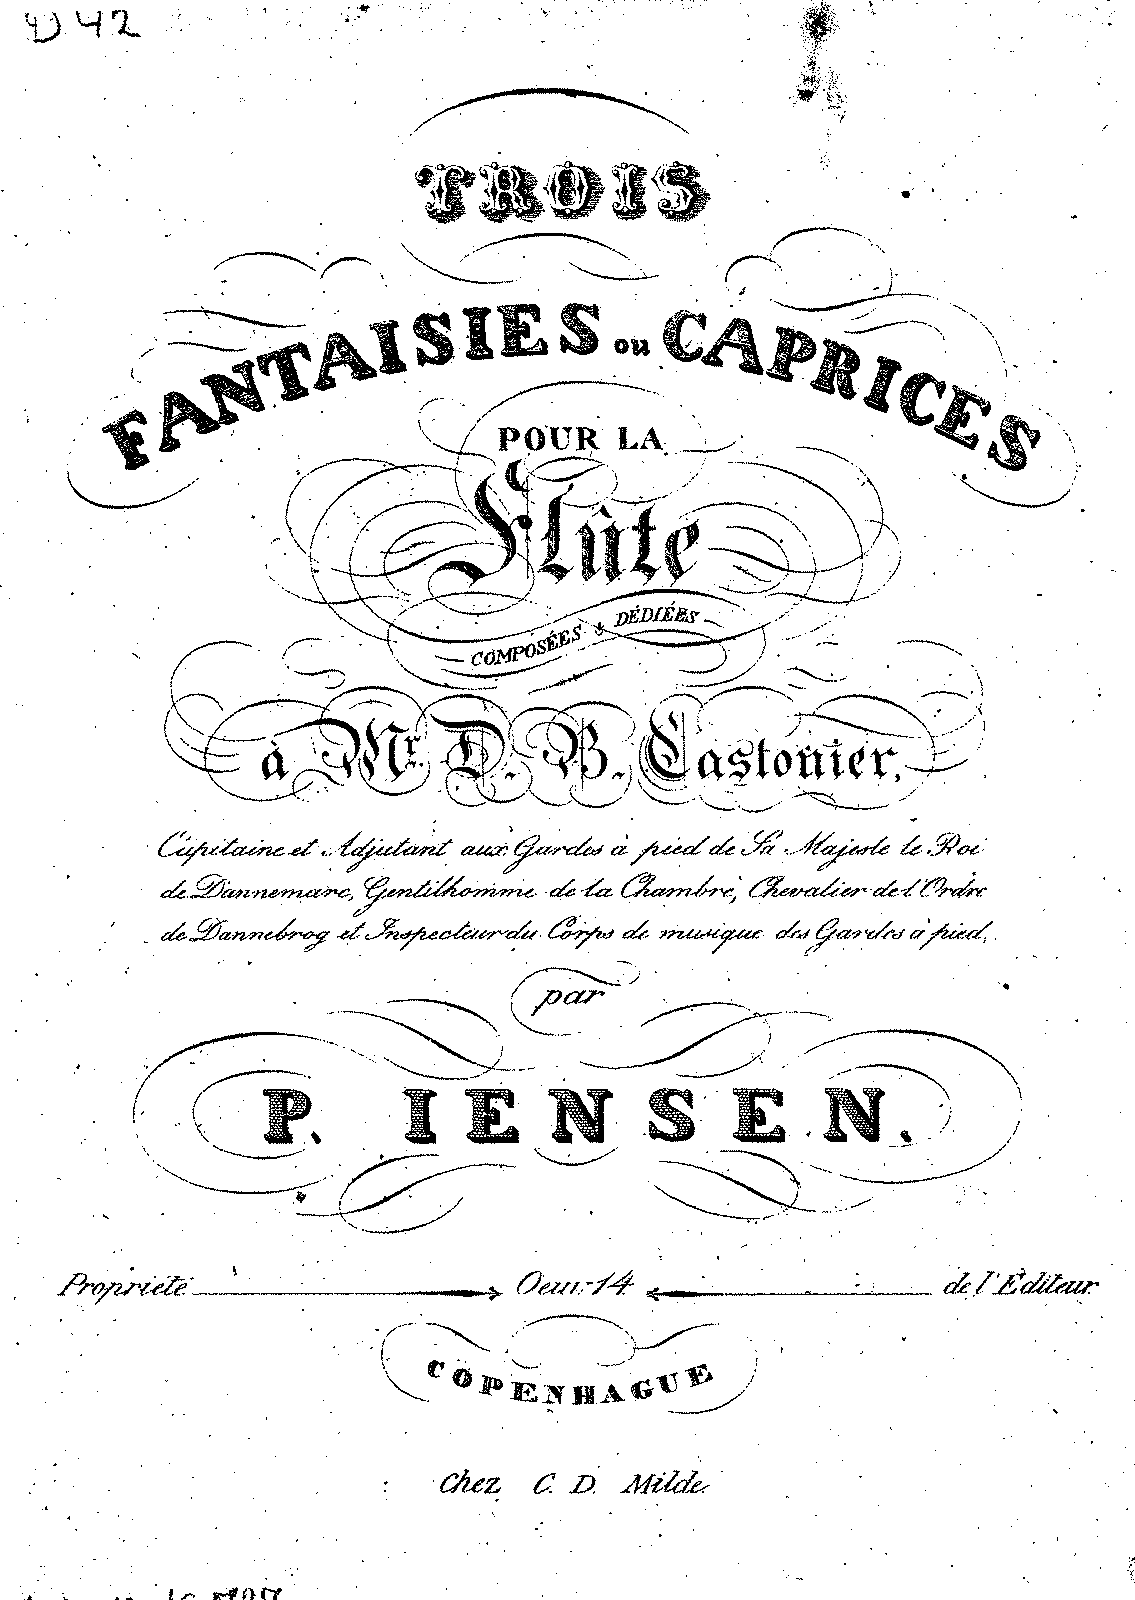 PMLP52049-JensenP 3 Fantaisies Caprices Op14.pdf